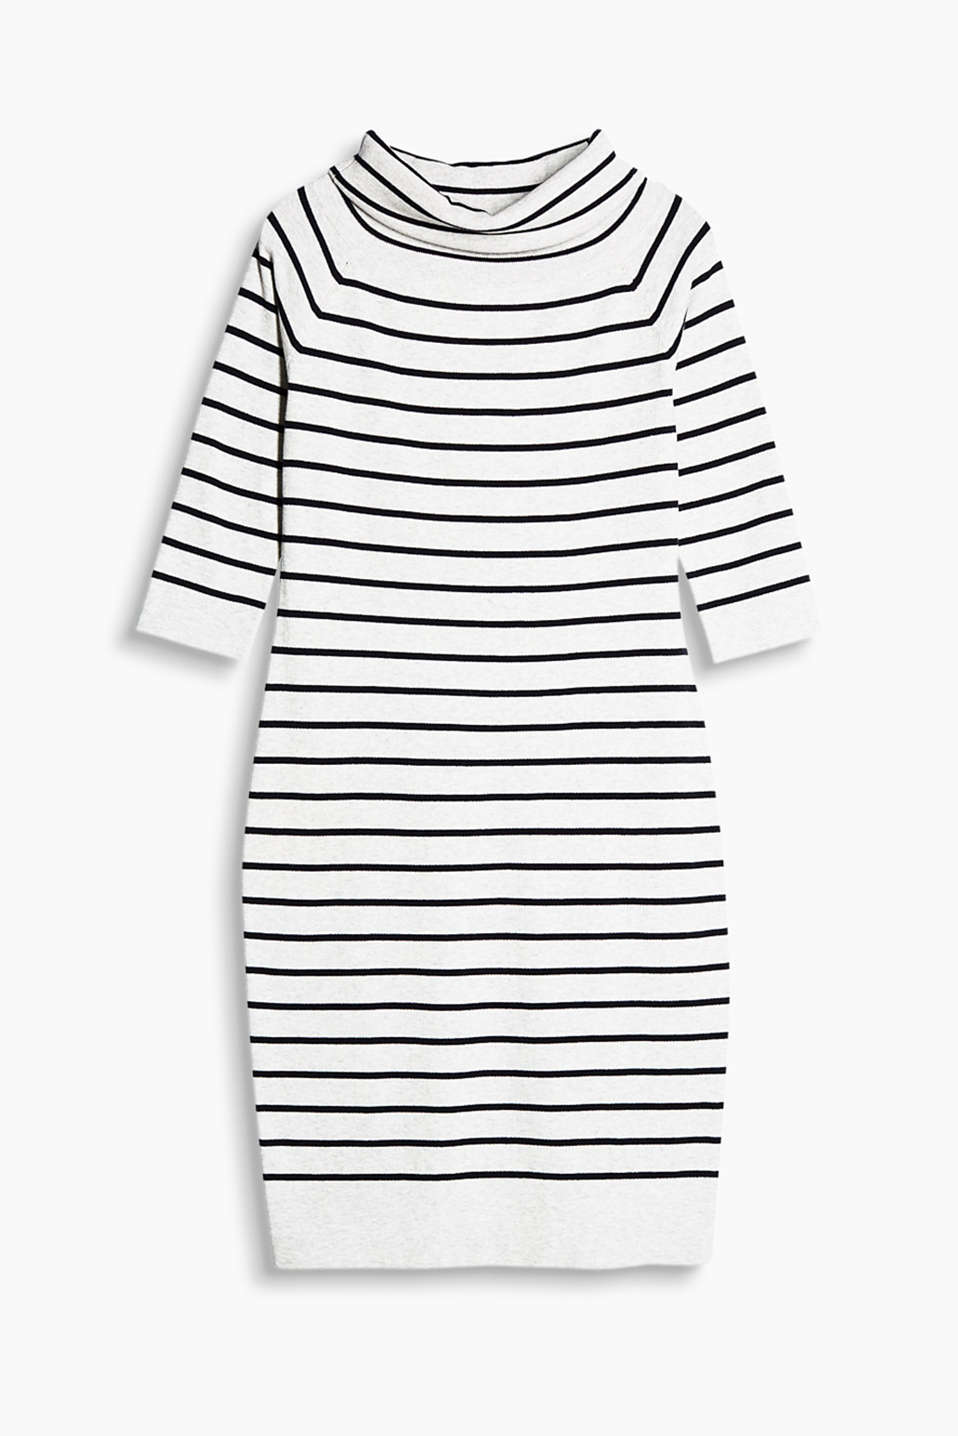 Made of fine rib knit: off-the-shoulder dress in a cool striped look